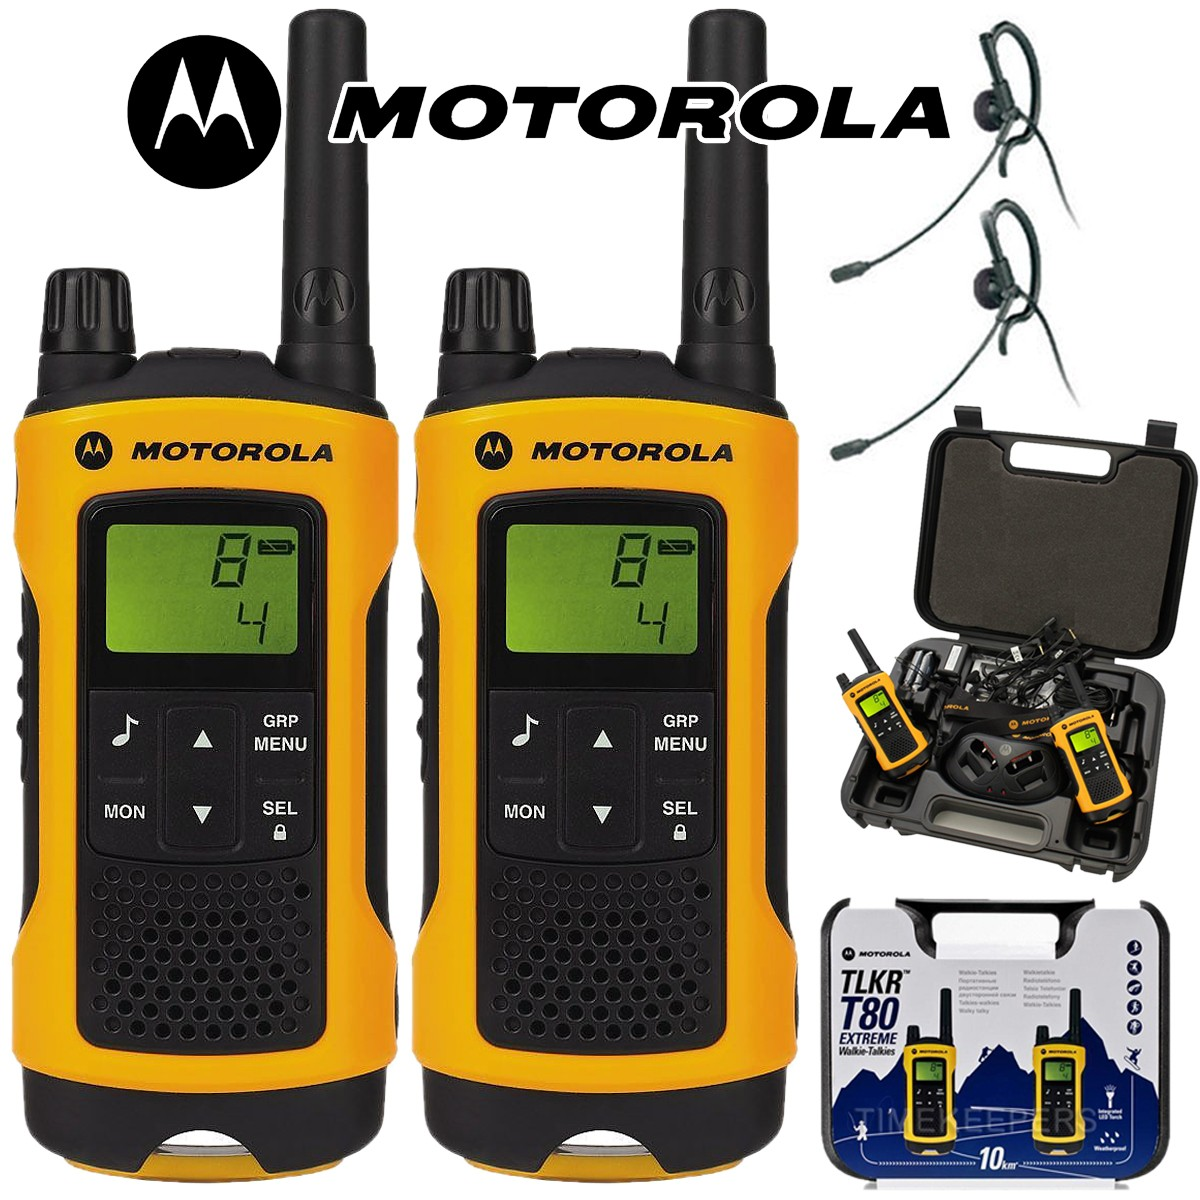 radio remote cars with 10km Motorola Tlkr T80 Extreme Two Way Radio Walkie Talkie Travel Pack With 2 X Headsets For Skiing Go Karting Twin on Porsche 911 Carrera 4s Price In Pakistan further 1970 Plymouth Hemi Cuda in addition Car Of The Day Subaru Impreza P1 Prodrive Limited Edition furthermore 115895745 furthermore Rc car clipart.